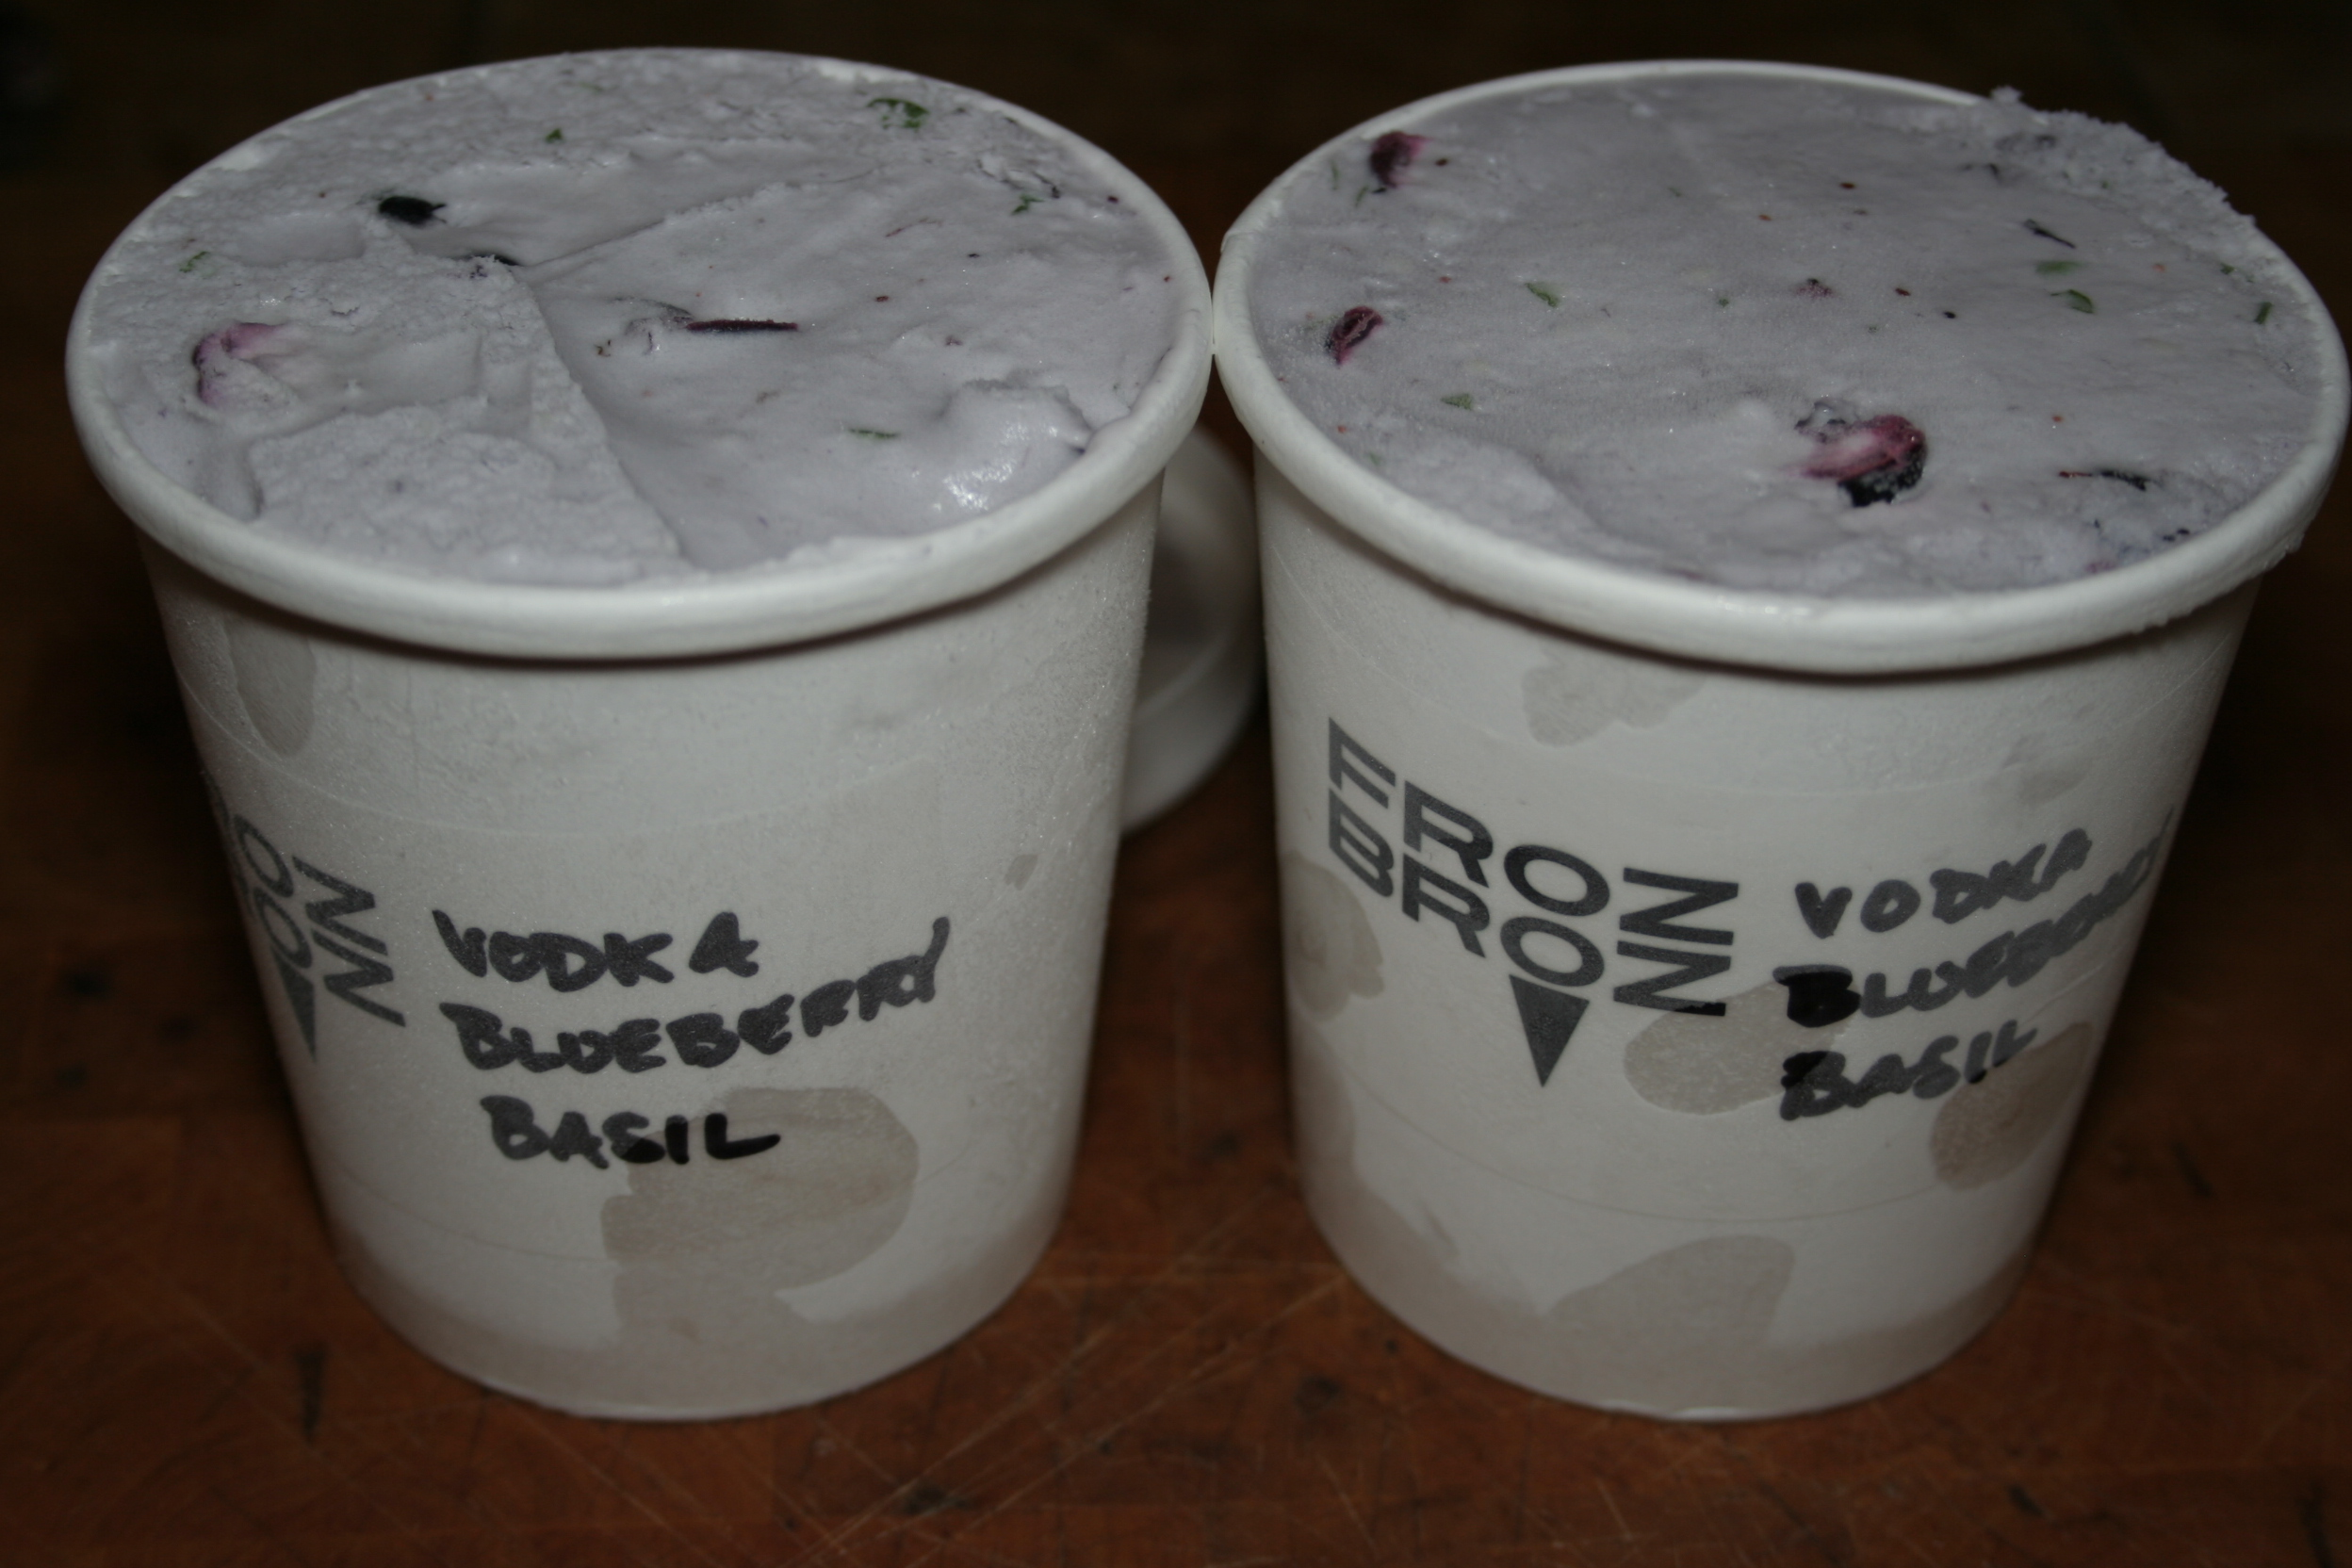 Vodka blueberry and basil frozbroz for Ice cream with alcohol